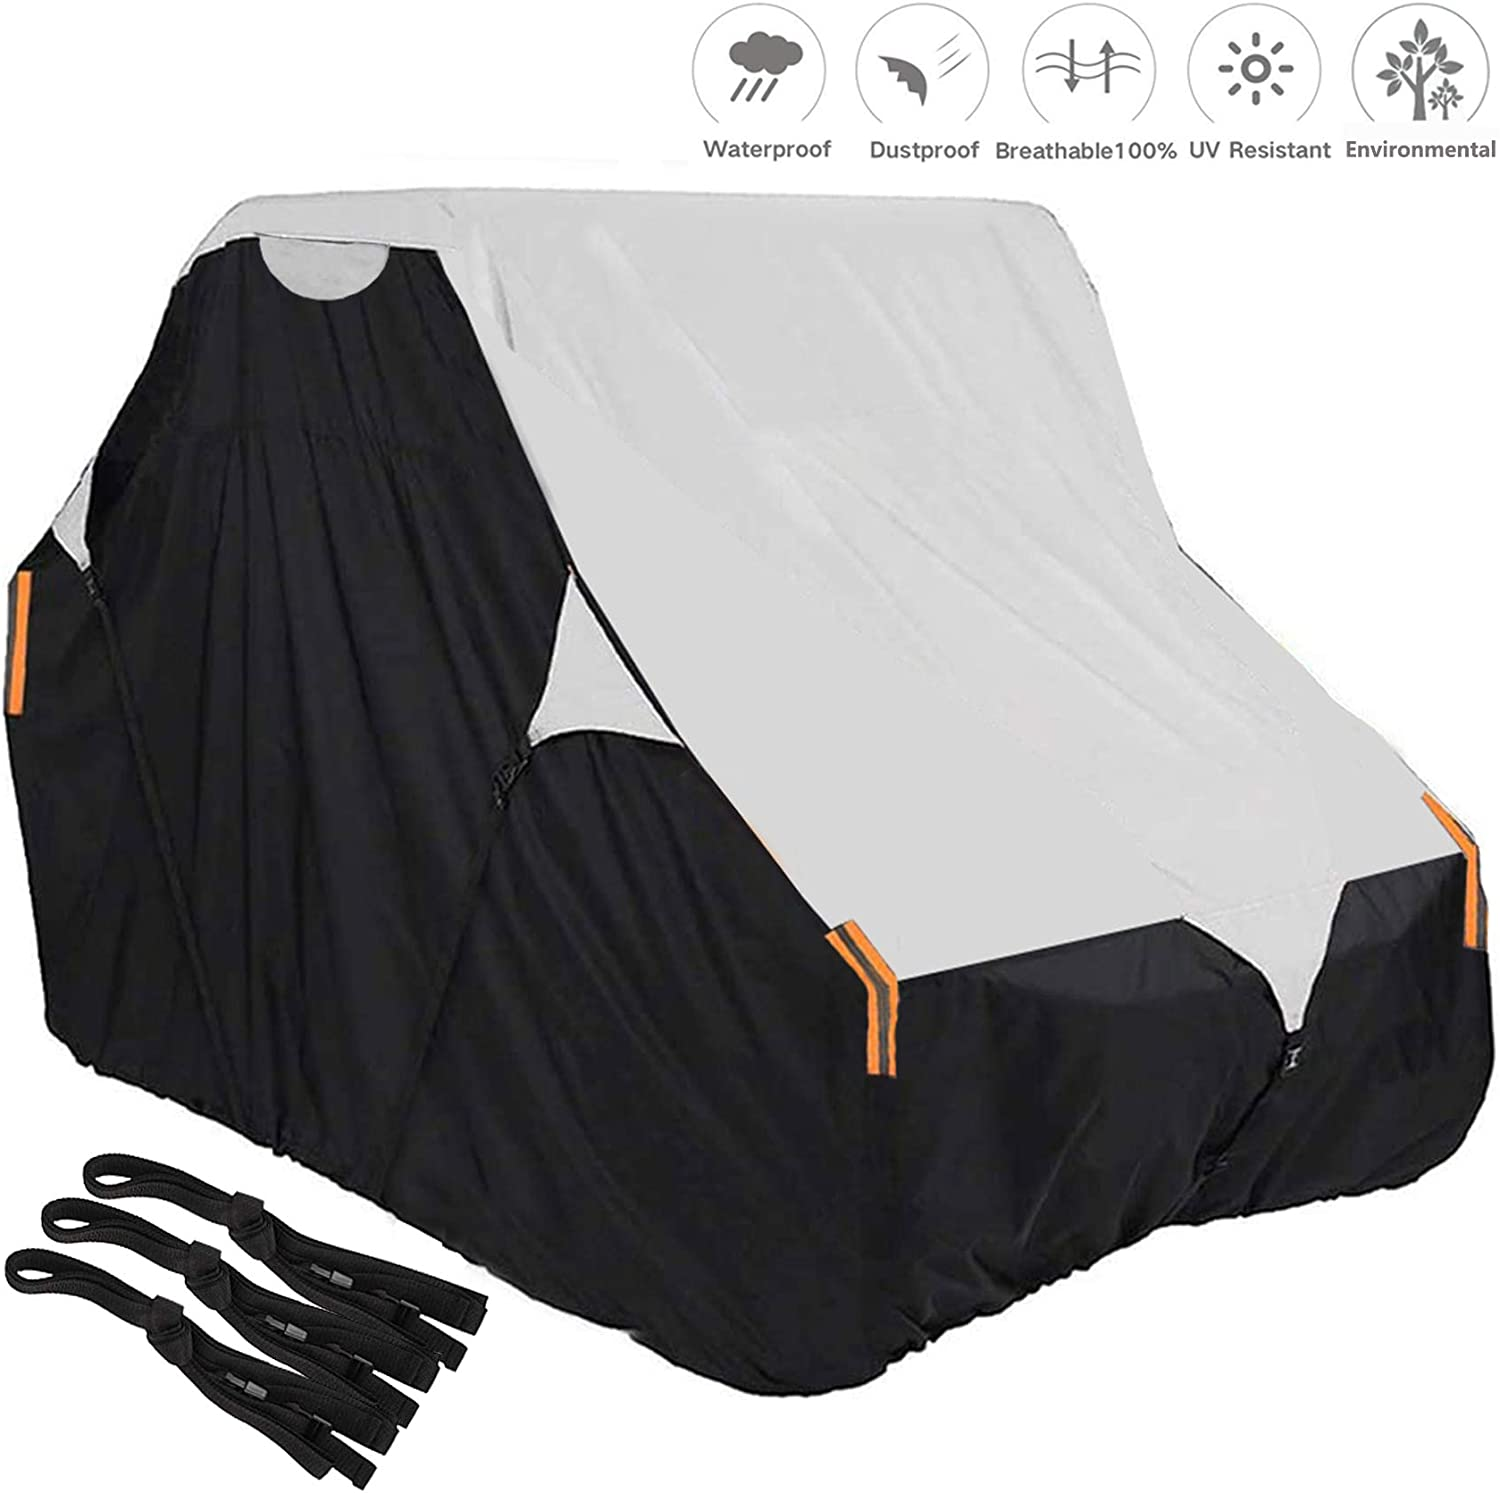 UTV Cover 420D Waterproof Oxford Side by low-pricing Super-cheap Fabric